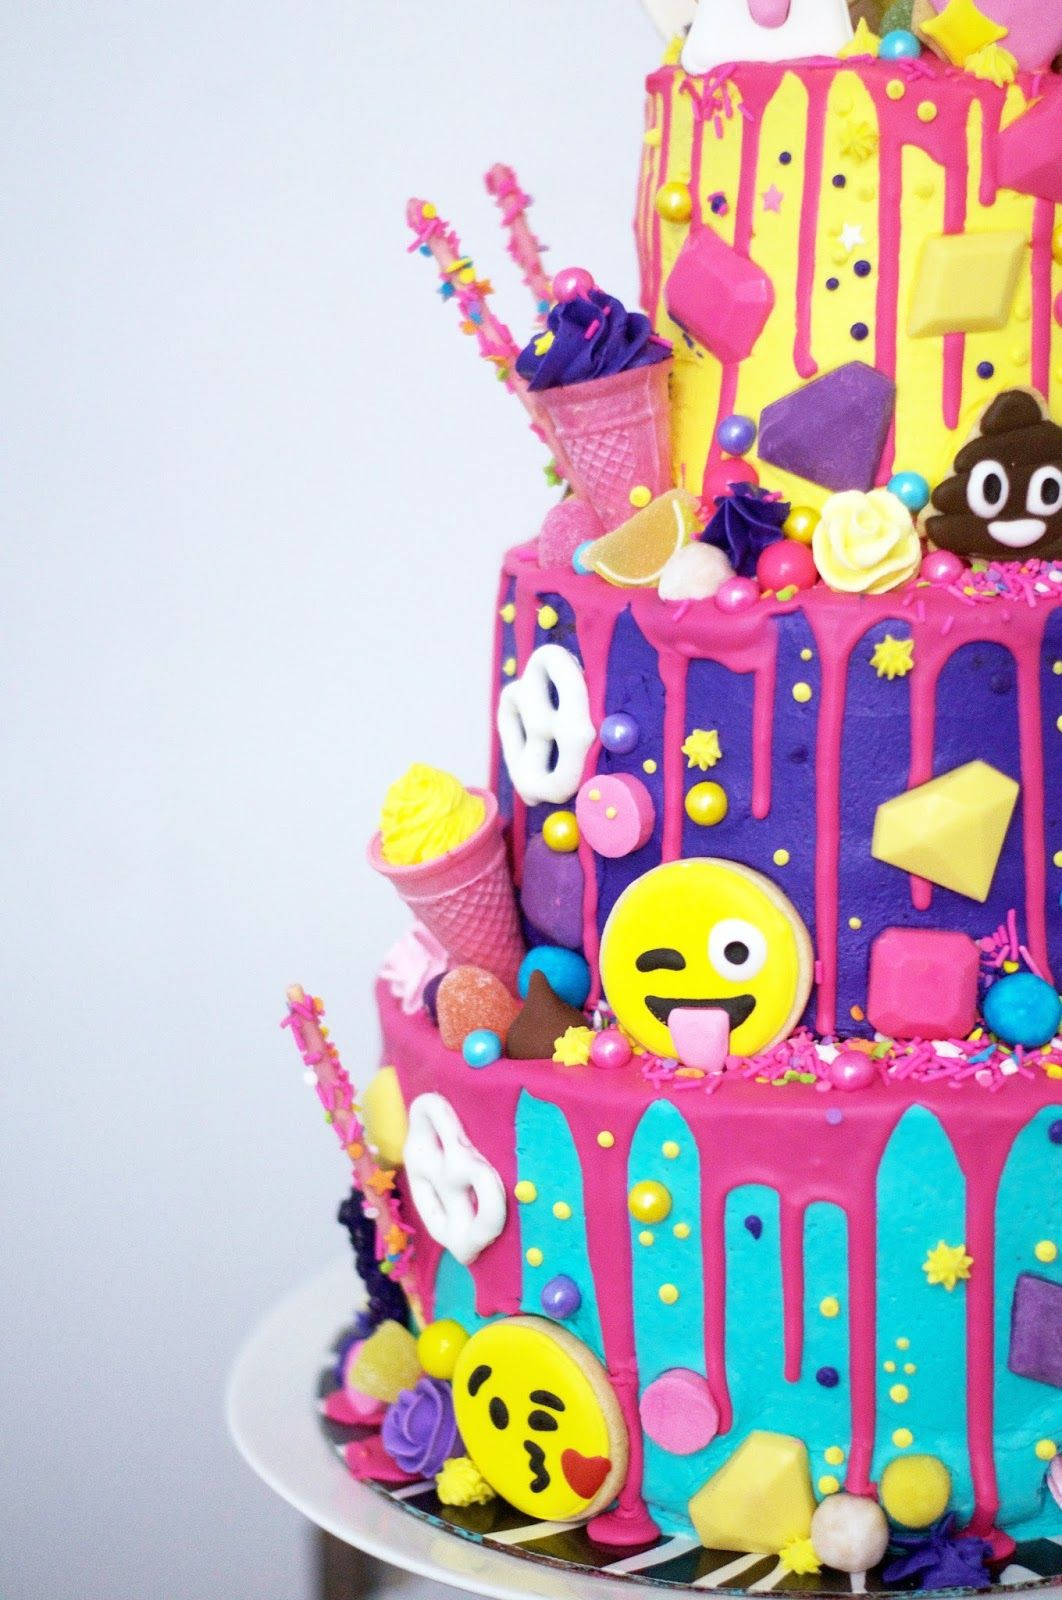 This Might Be My Favorite Build A Cake To Date The Incredible Lynzie At Love By Lynzie Asked Me To Make This Three Tiered Giant T Emoji Cake Cake Savoury Cake